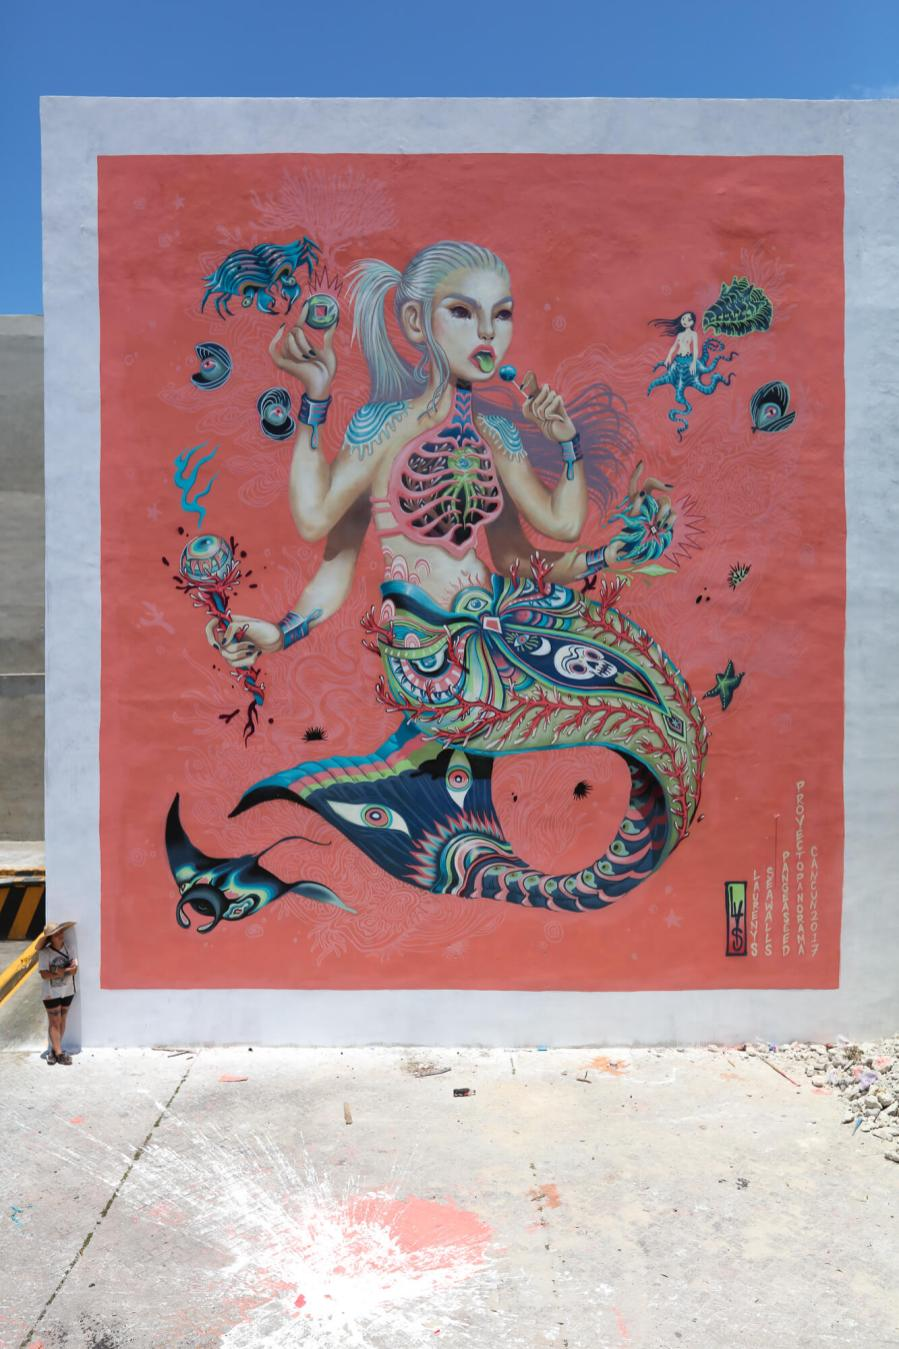 Lauren YS, Sea Walls: Artists for Oceans Street art festival Cancun, Mexico 2017. Photo Credit Tre' Packard.